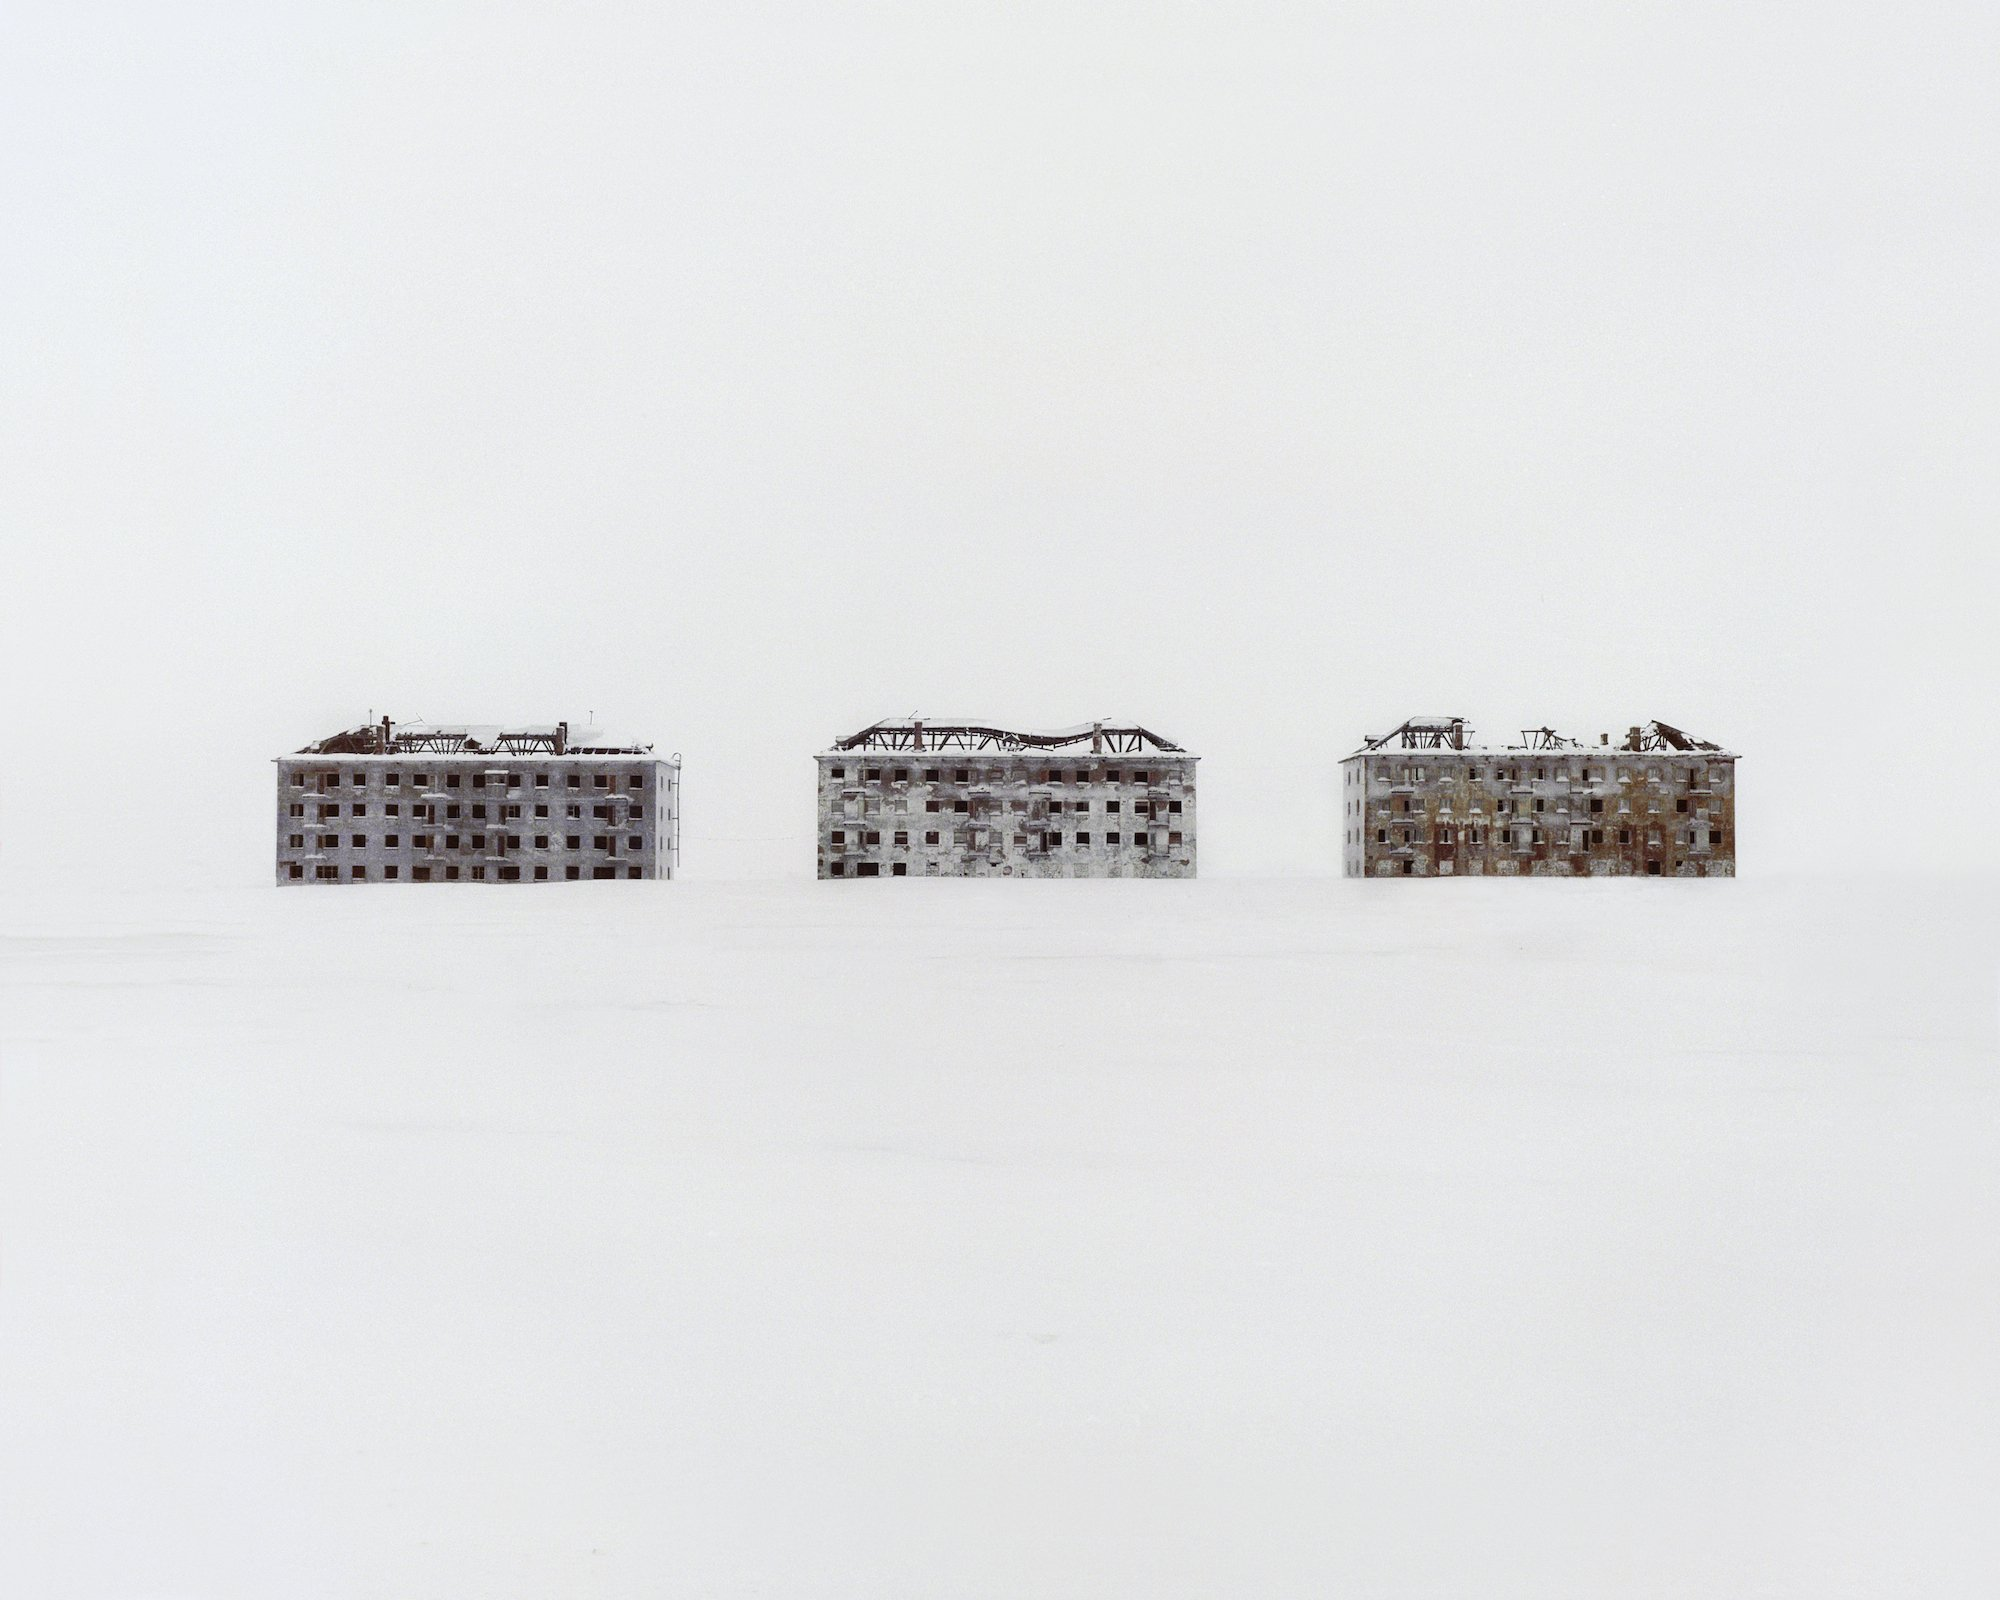 Restricted Areas - former residential buildings in a deserted polar scientific town that specialised in biological research